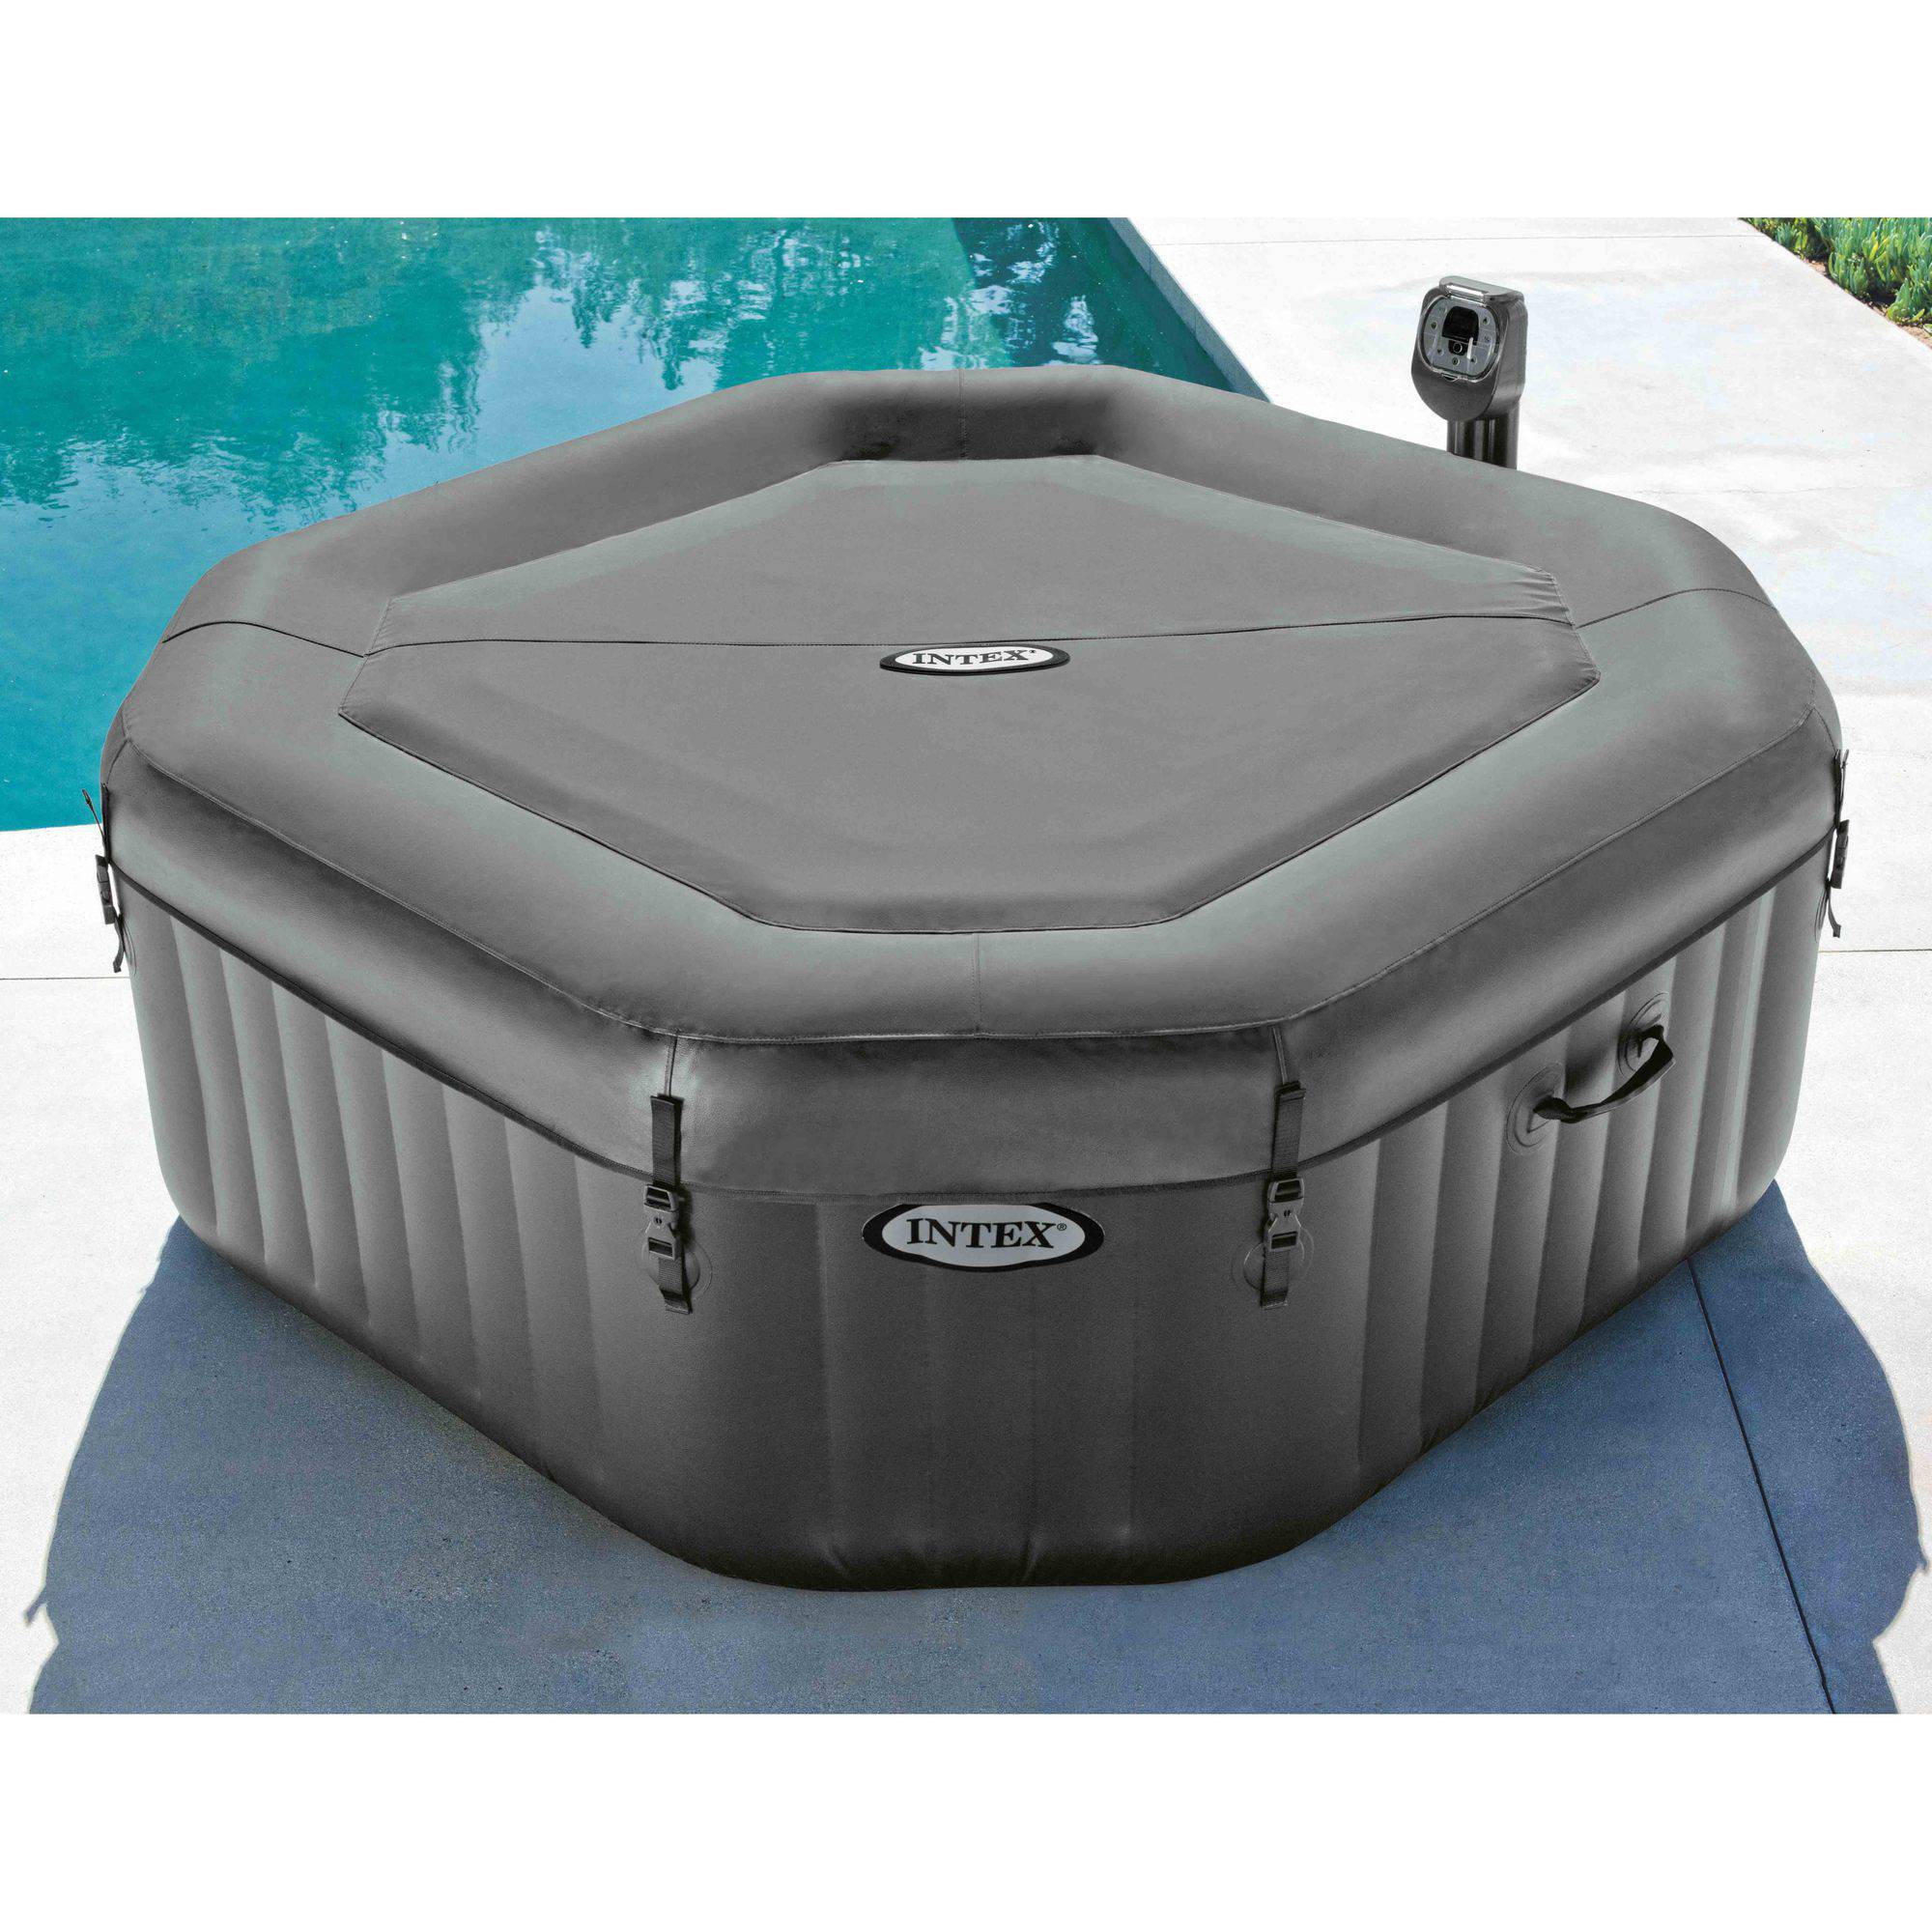 Intex 120 bubble jets 4 person octagonal purespa for Aspirateur spa intex